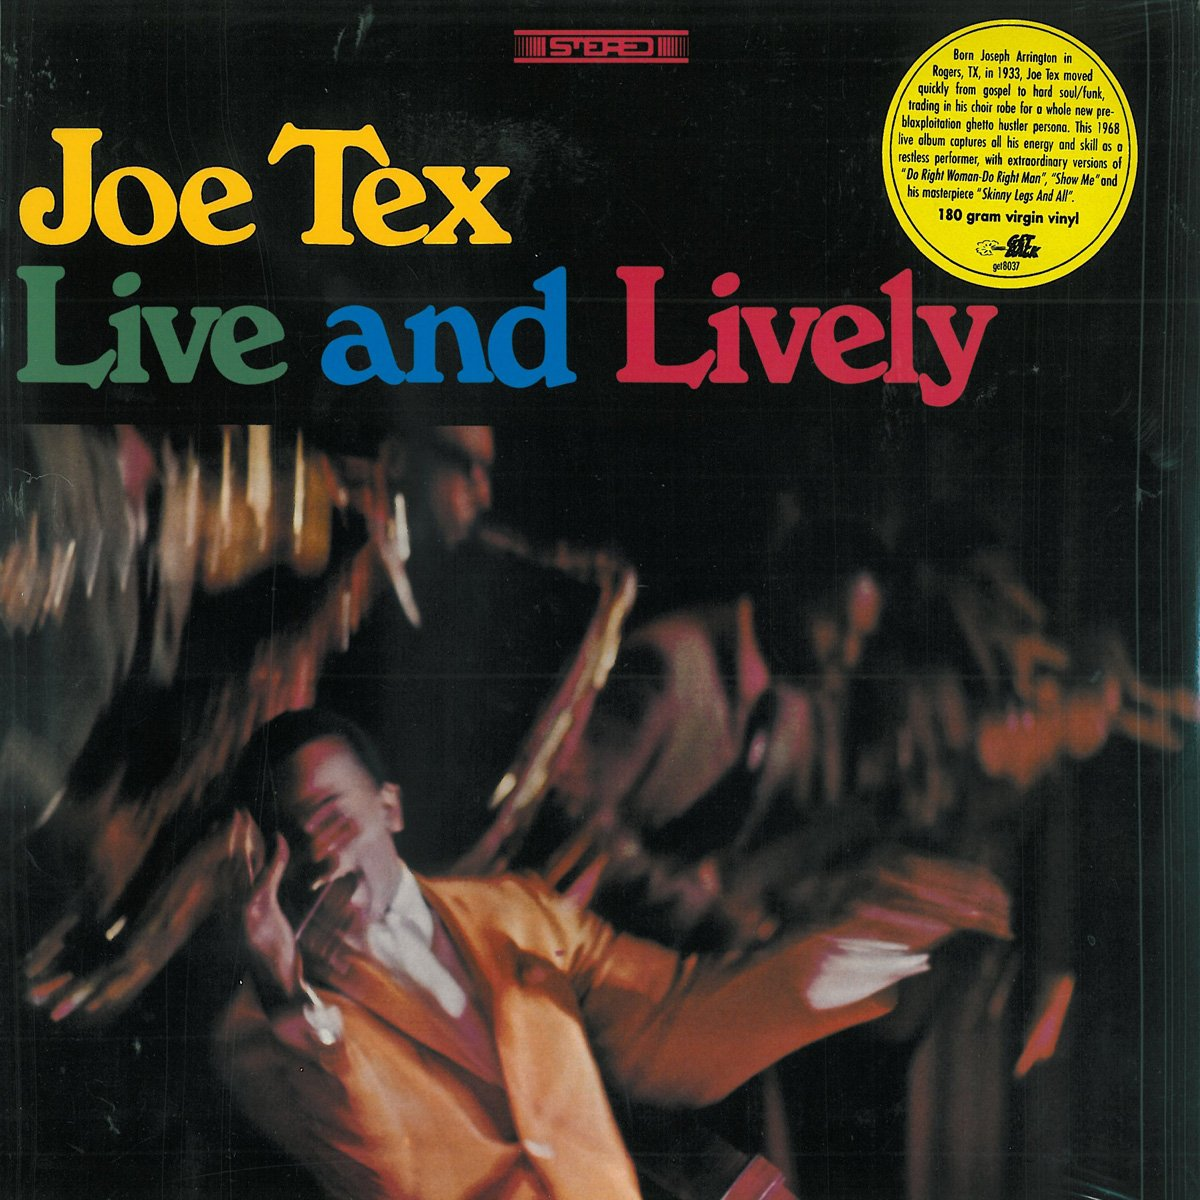 Joe Tex: Live and Lively, 1968 by Atlantic